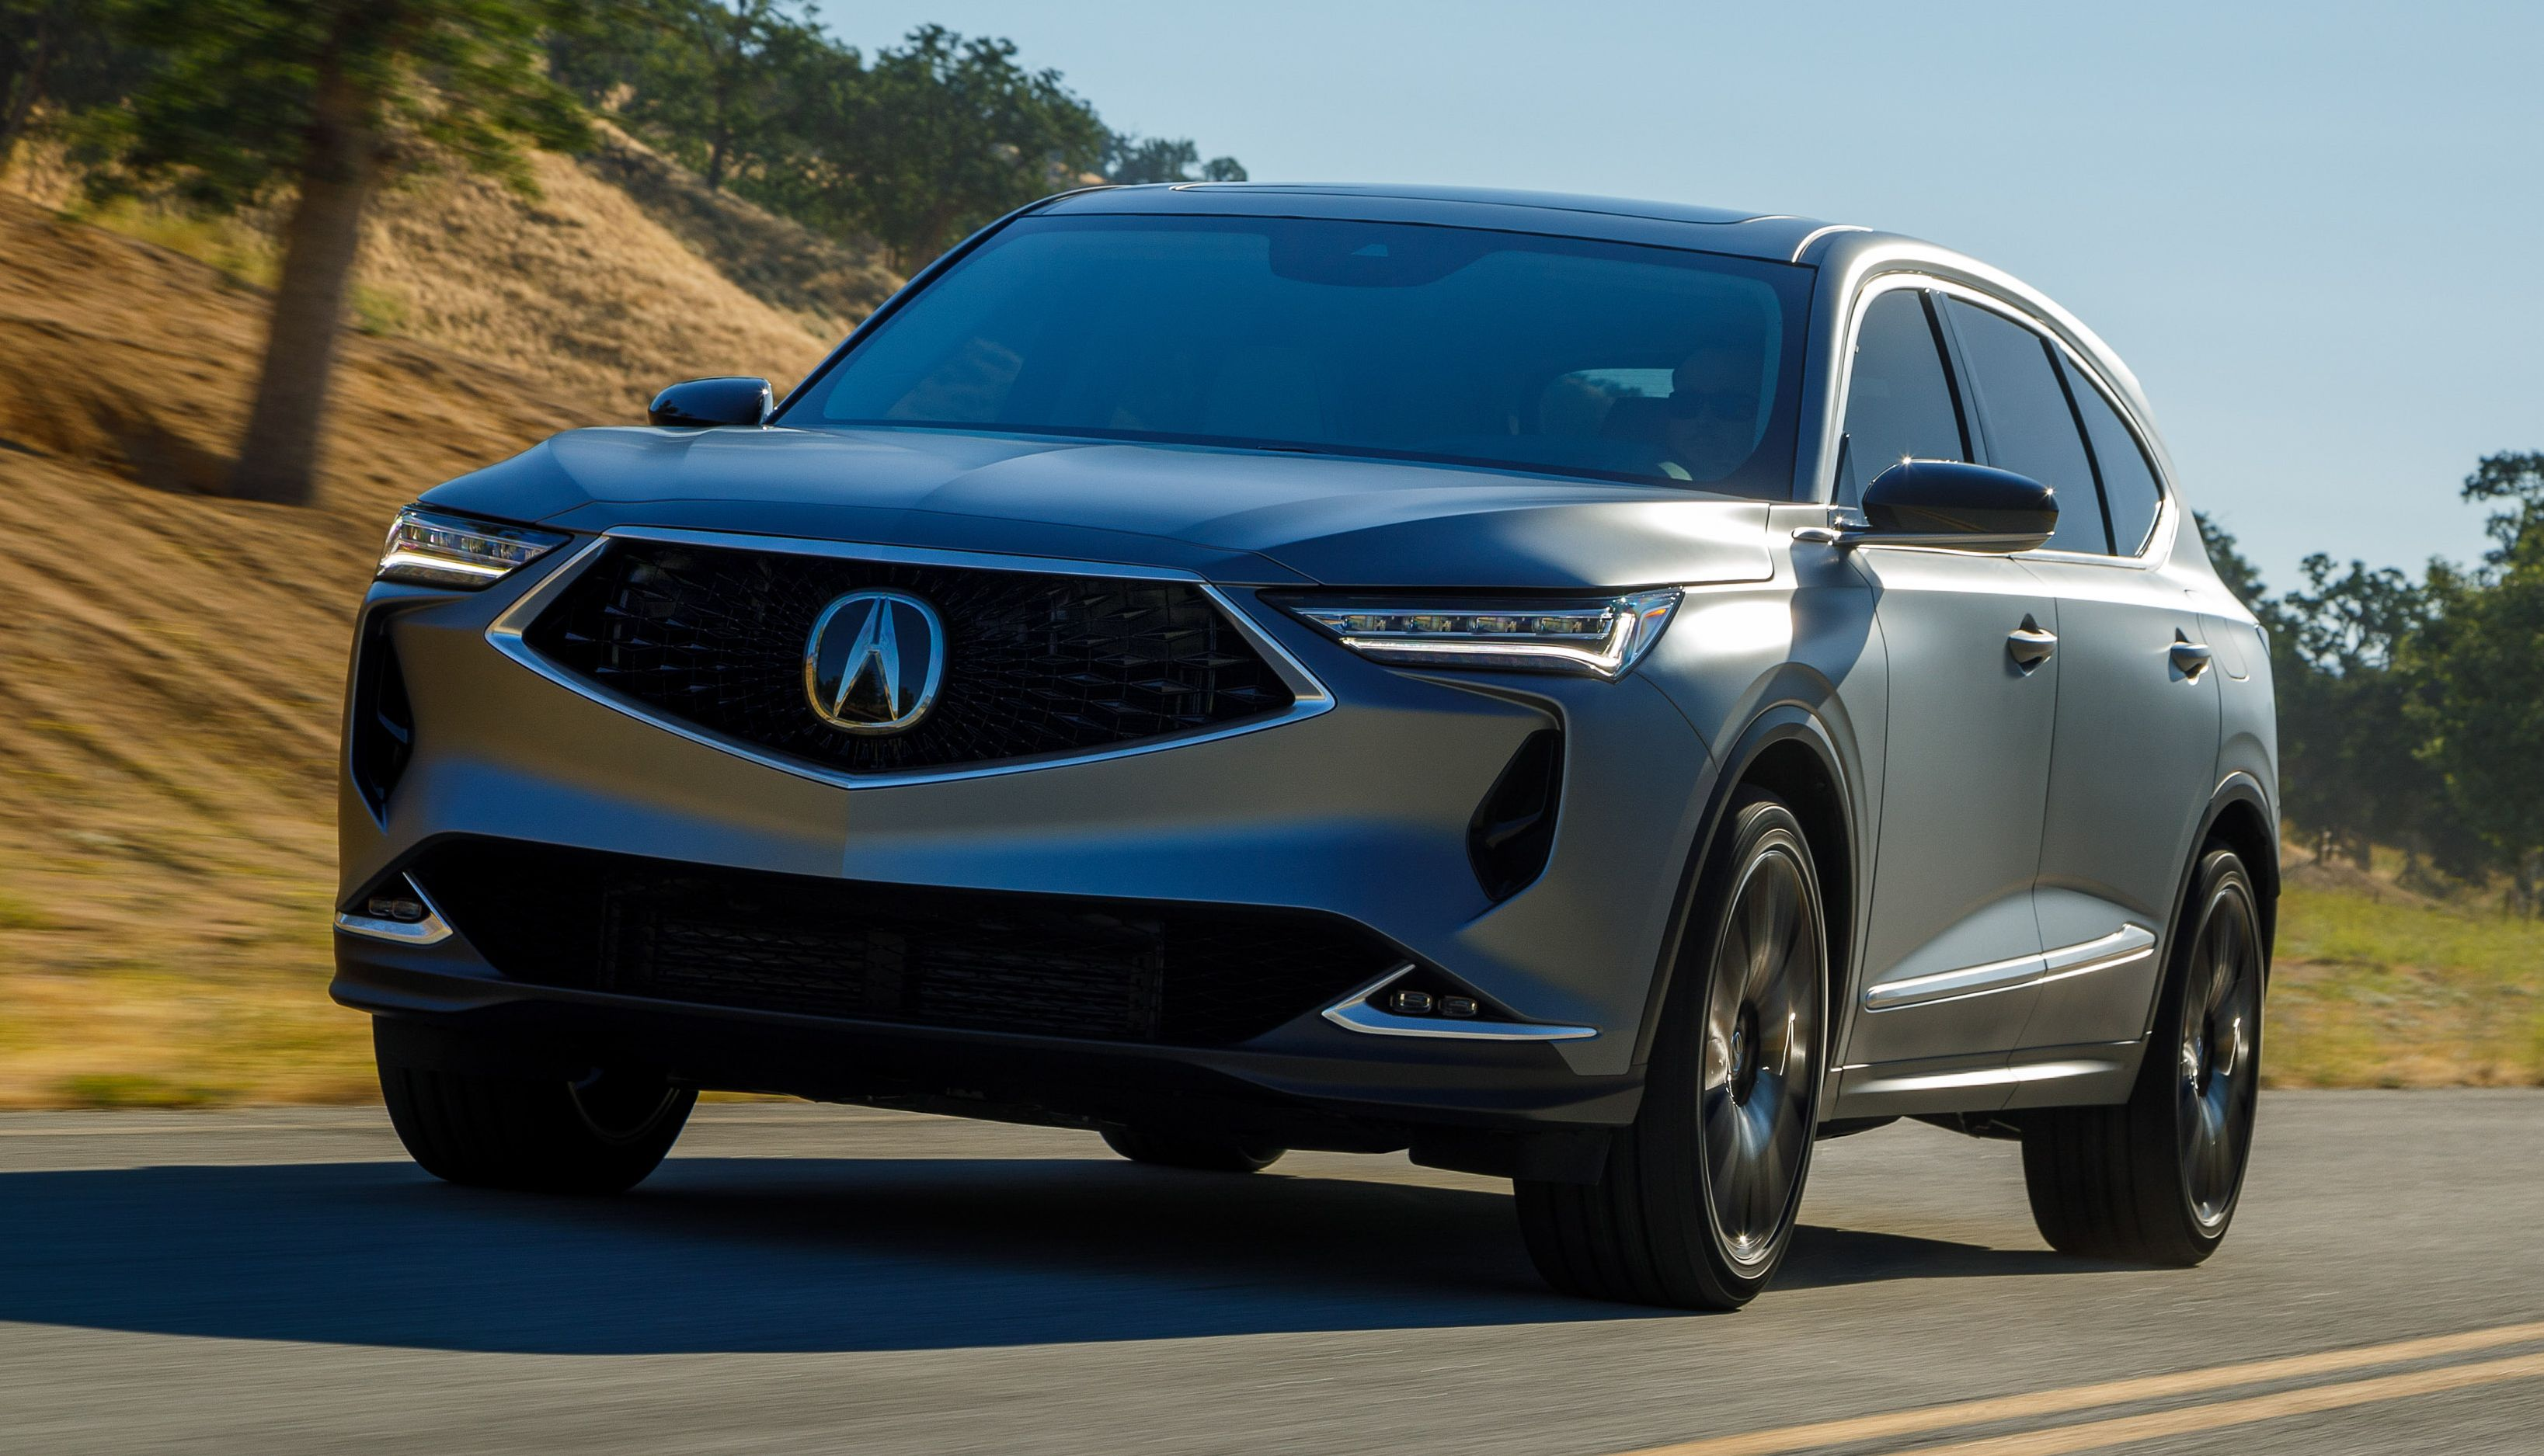 Acura Mdx Prototype Revealed Previews Production Version Of All New Three Row Suv Arriving Early 2021 Paultan Org